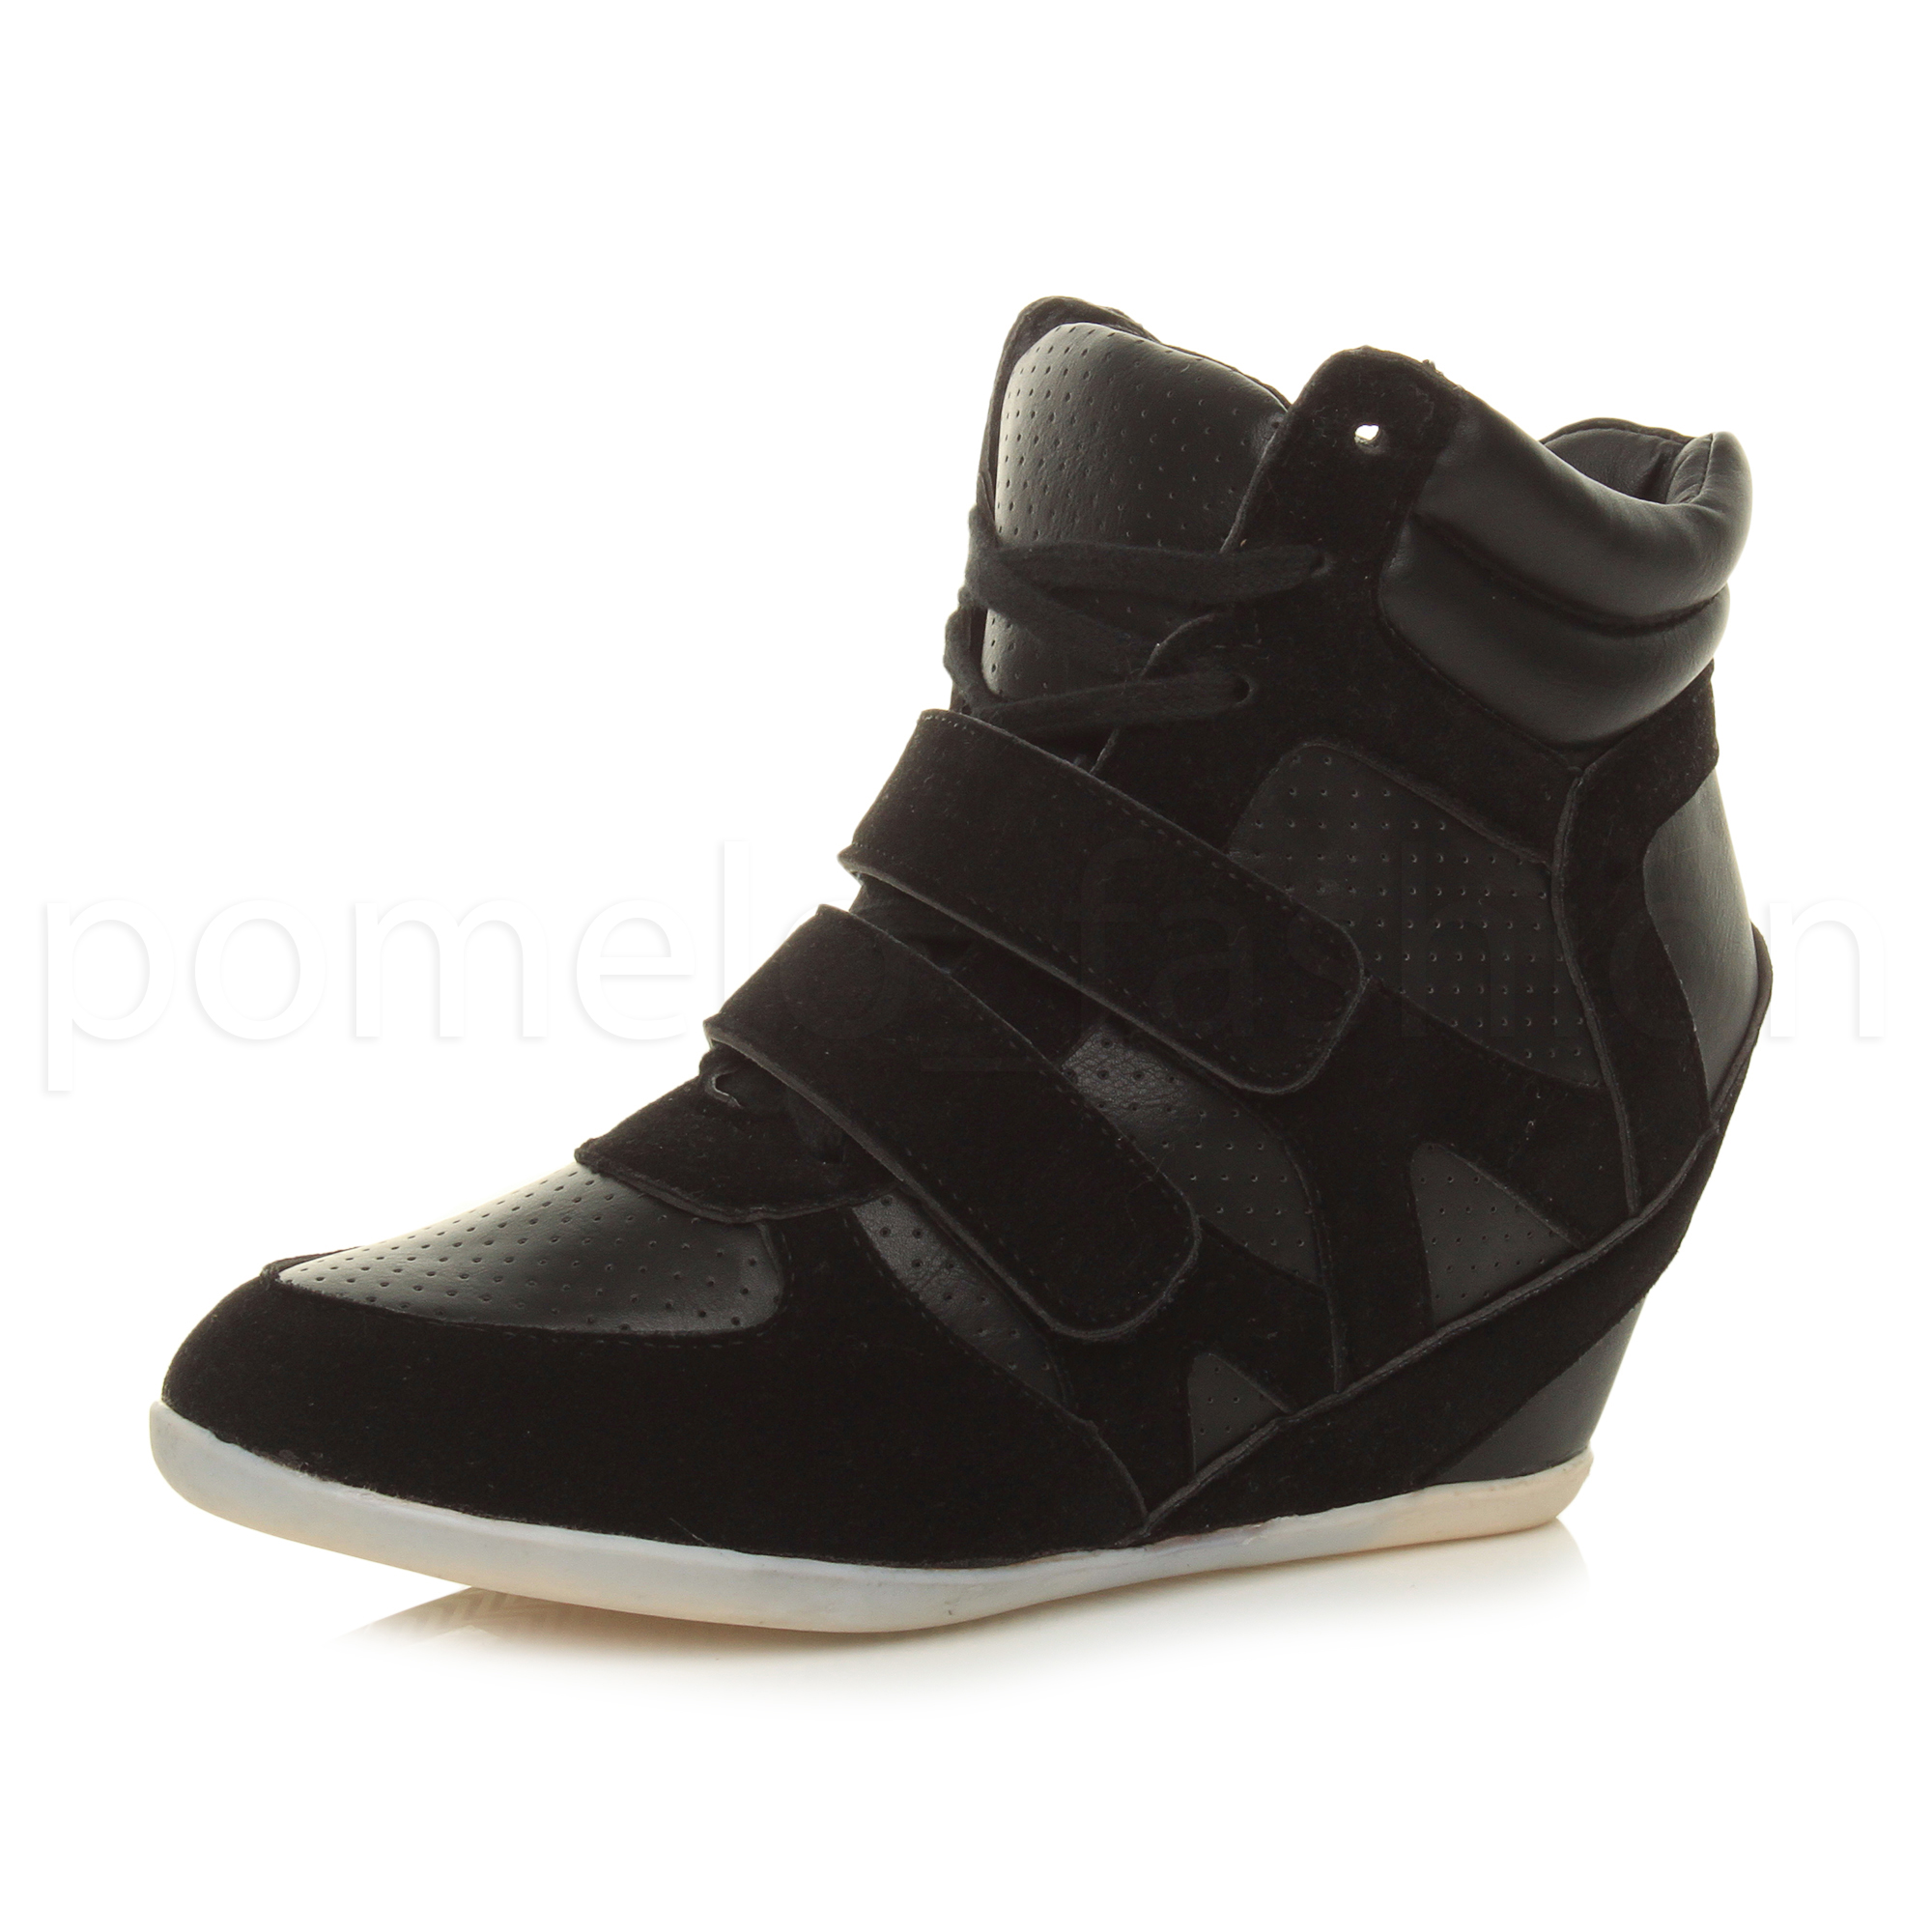 4b76d3ddd11 WOMENS LADIES HIGH WEDGE LACE UP HI HIGH TOP TRAINER ANKLE SHOE BOOTS SIZE